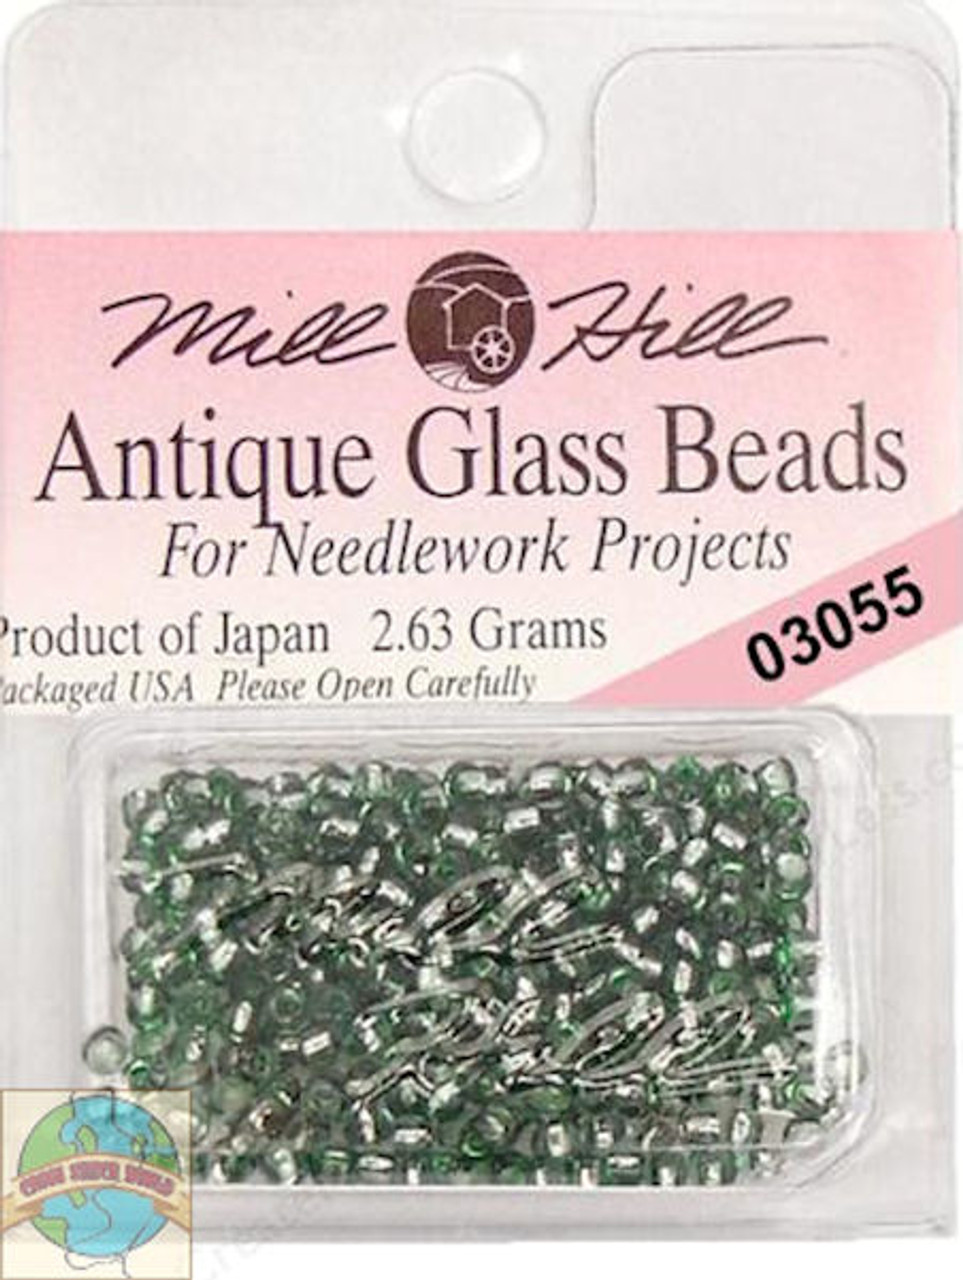 Mill Hill Antique Glass Beads 2.63g Bay Leaf #03055